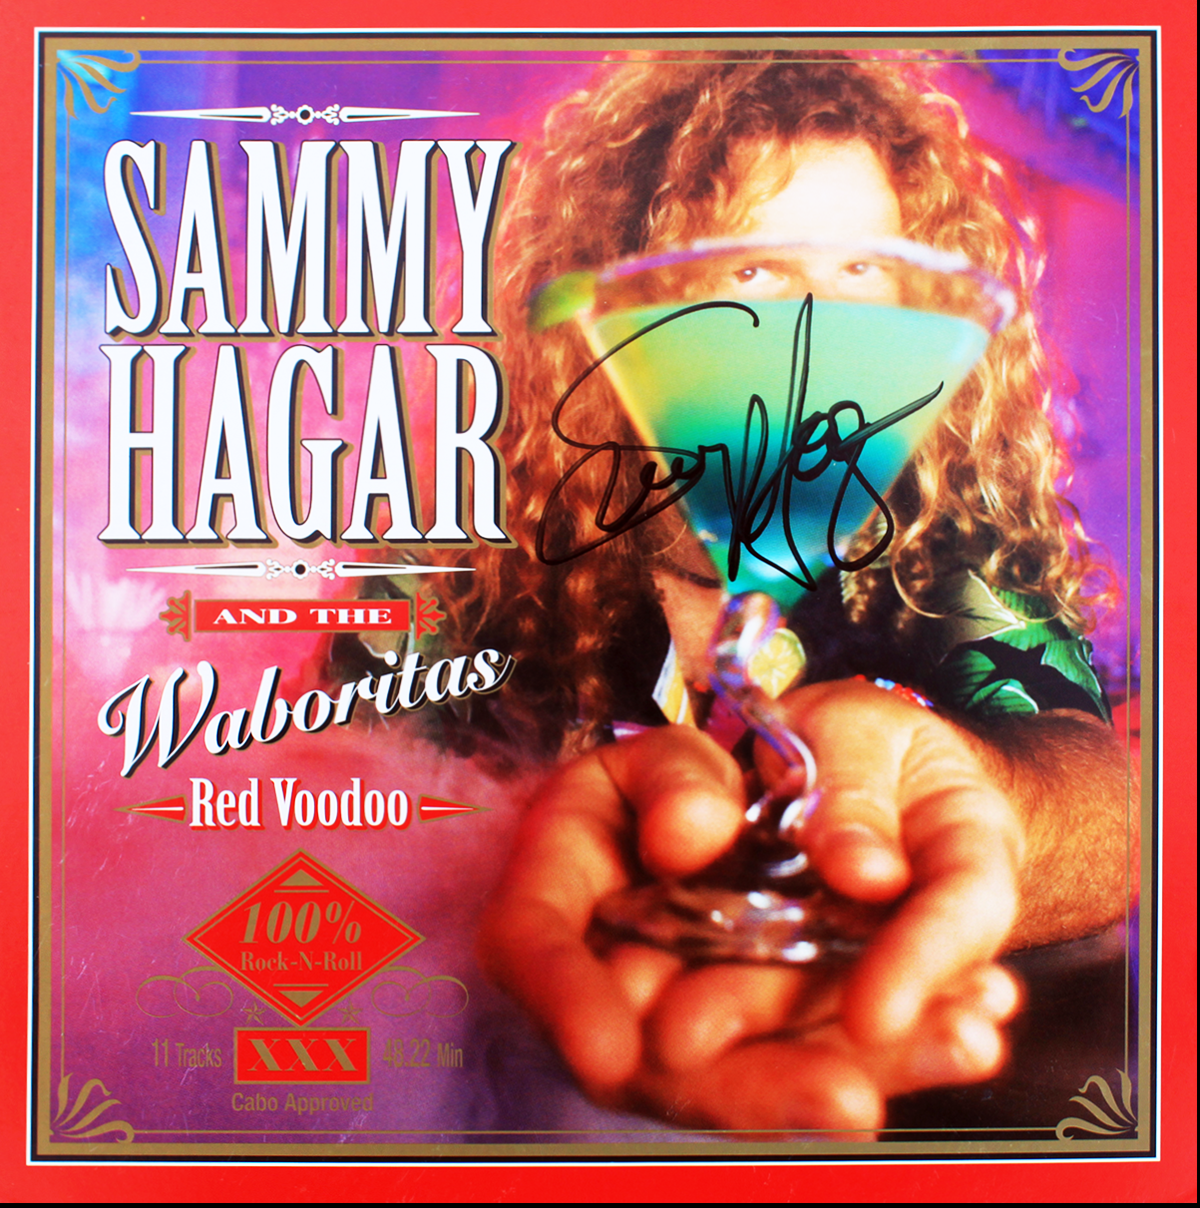 LP - Sammy Hagar and the Waboritas - Red Voodoo #2